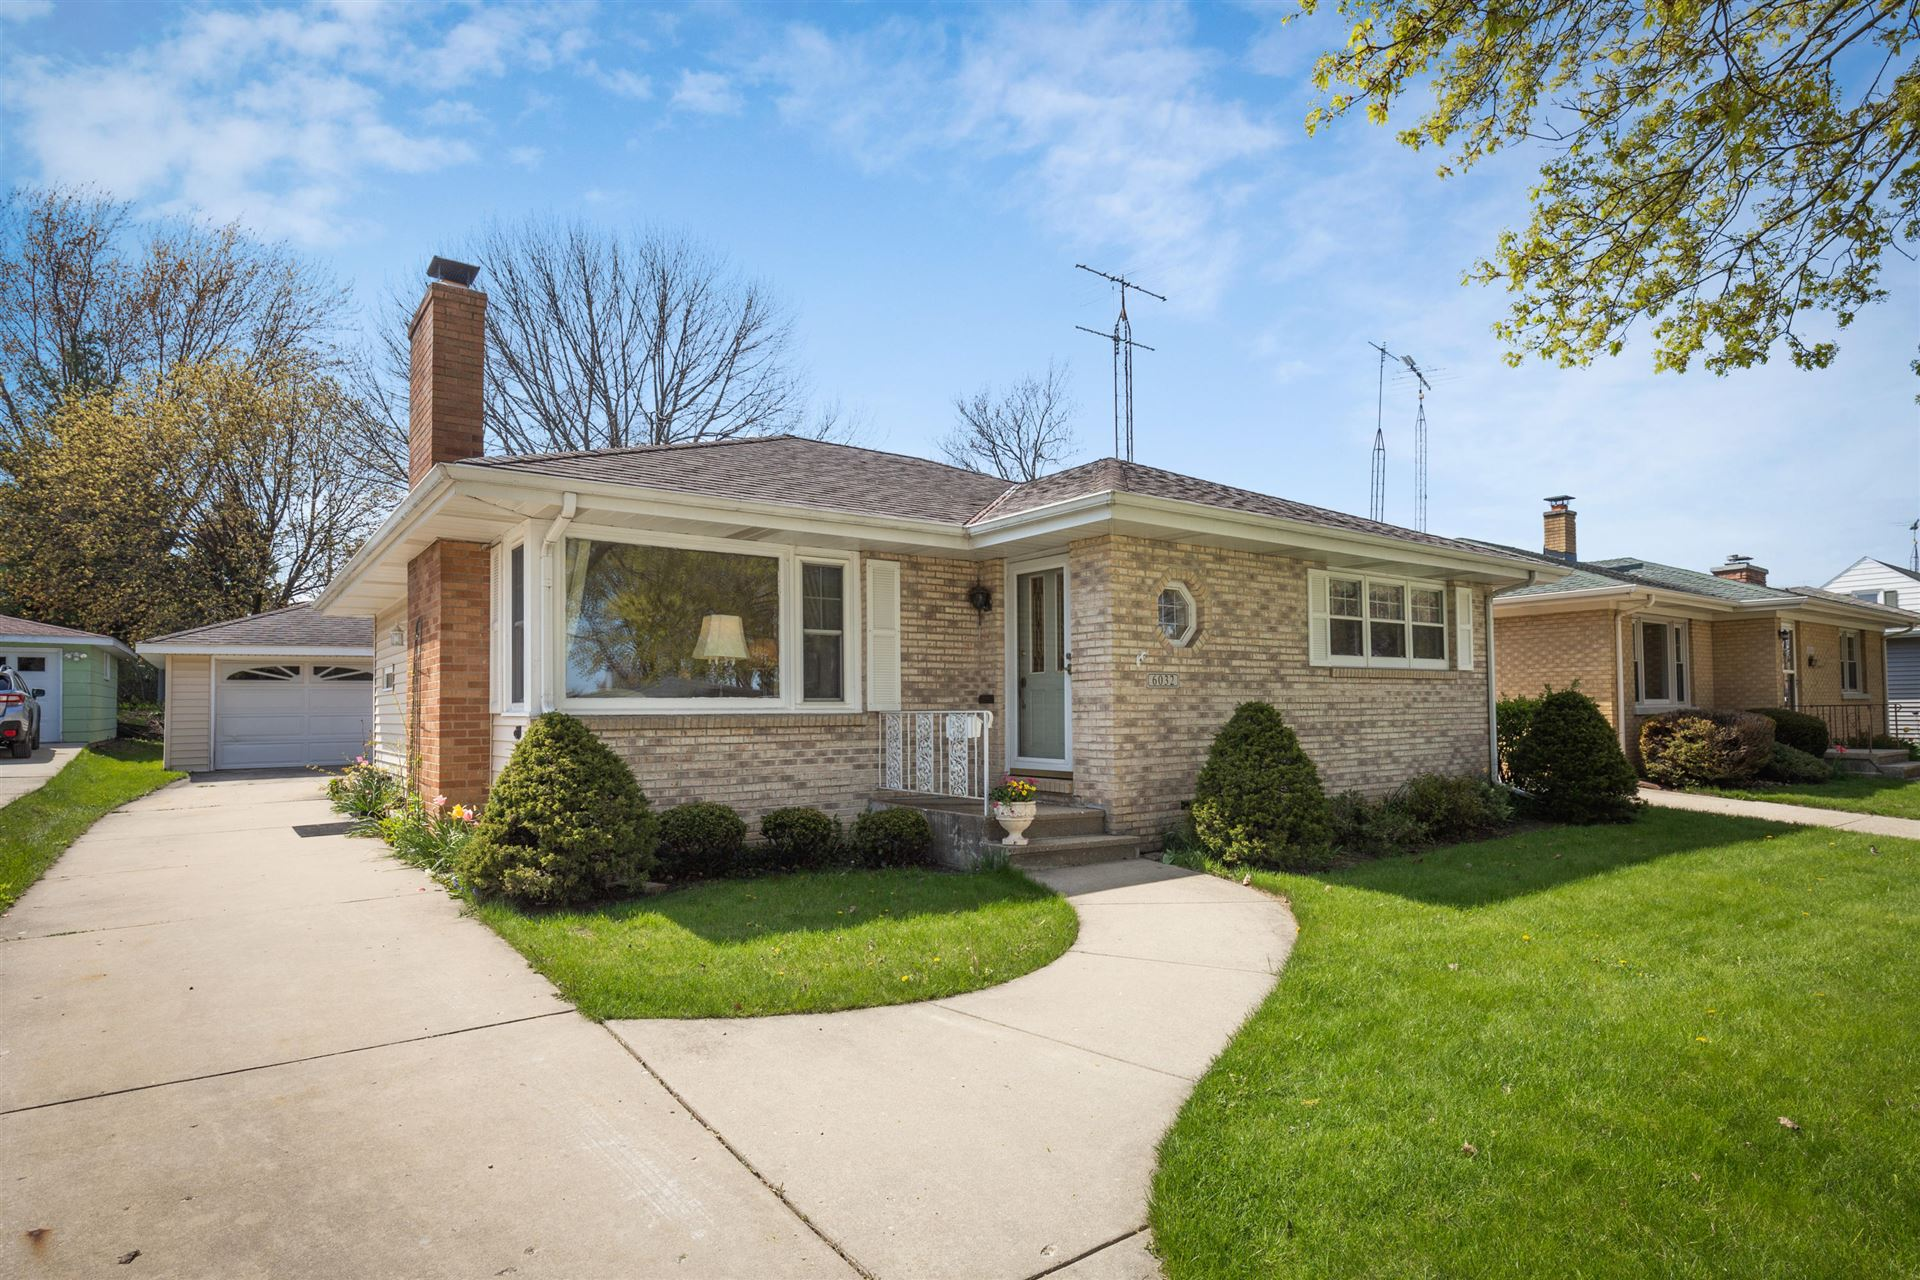 6032 47th Ave, Kenosha, WI 53142 - #: 1688958